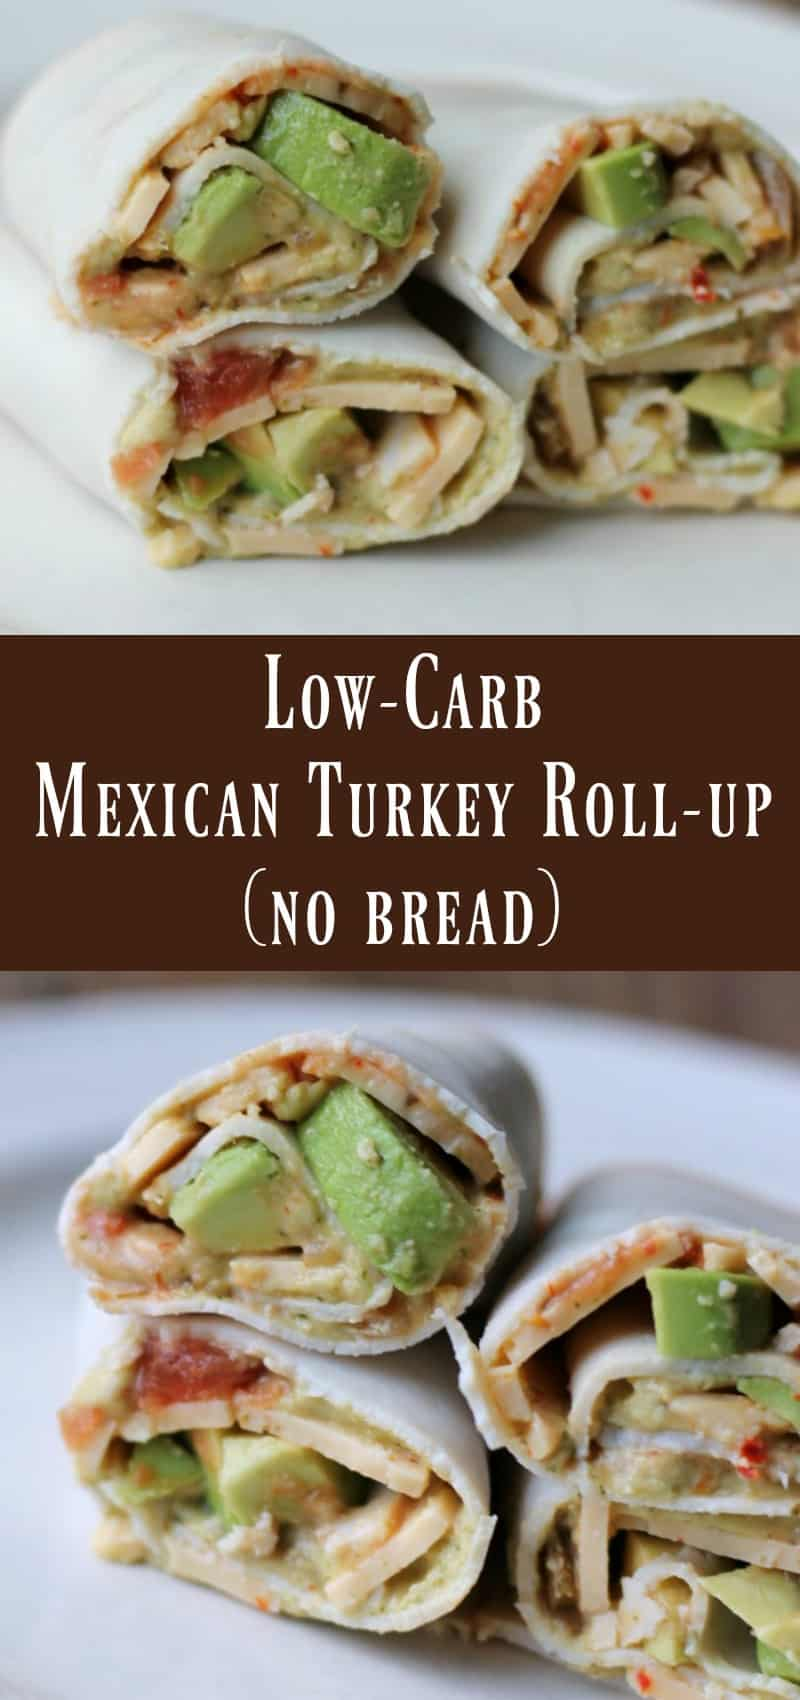 Low Carb Mexican Turkey Roll Up Organize Yourself Skinny